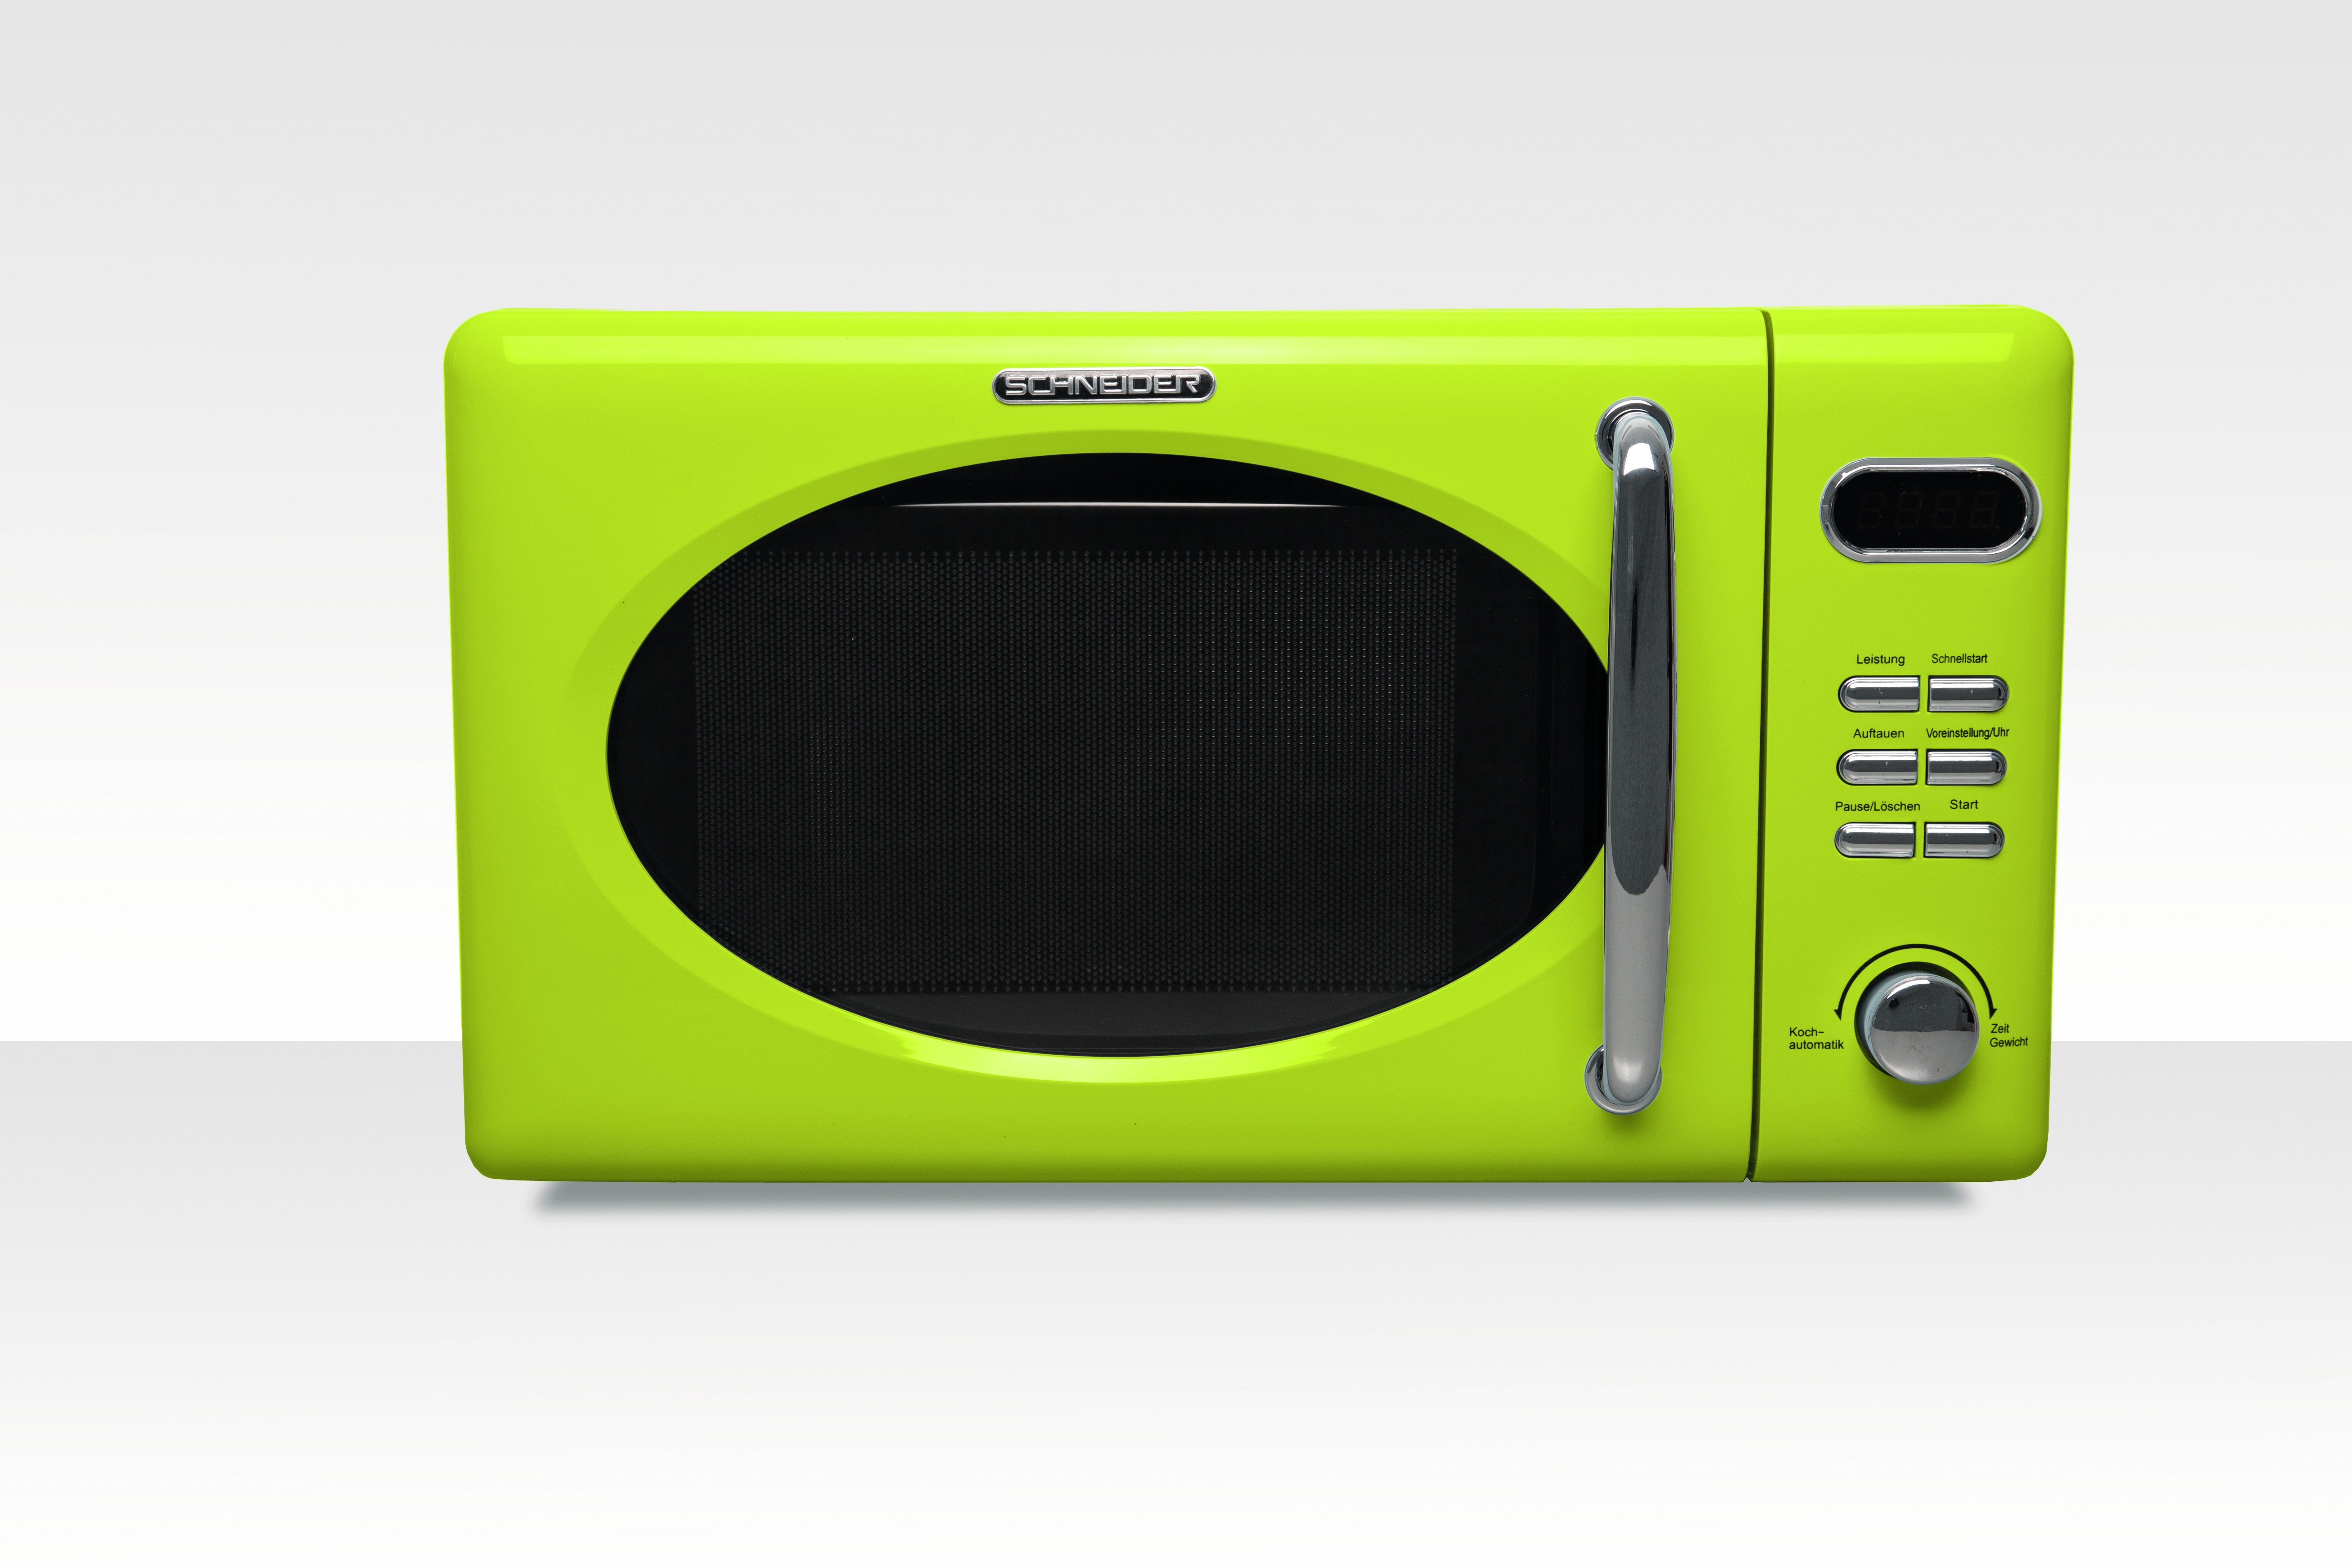 Schneider solo magnetron MW 720 LG Lime Green